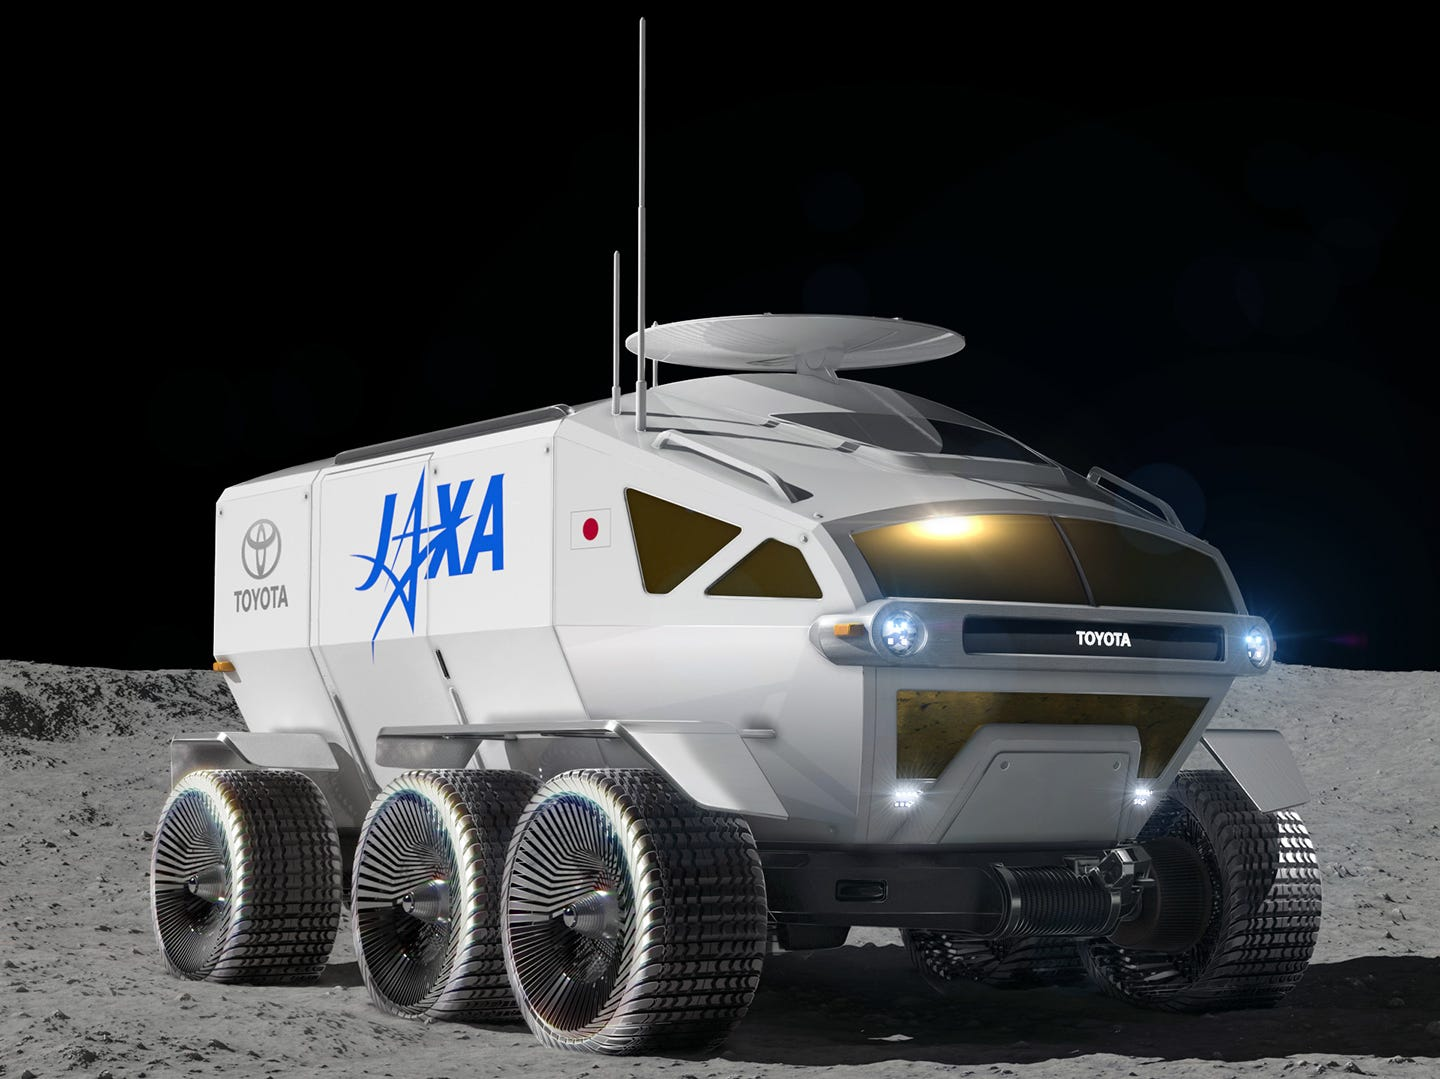 Toyota's next big vehicle is over the moon